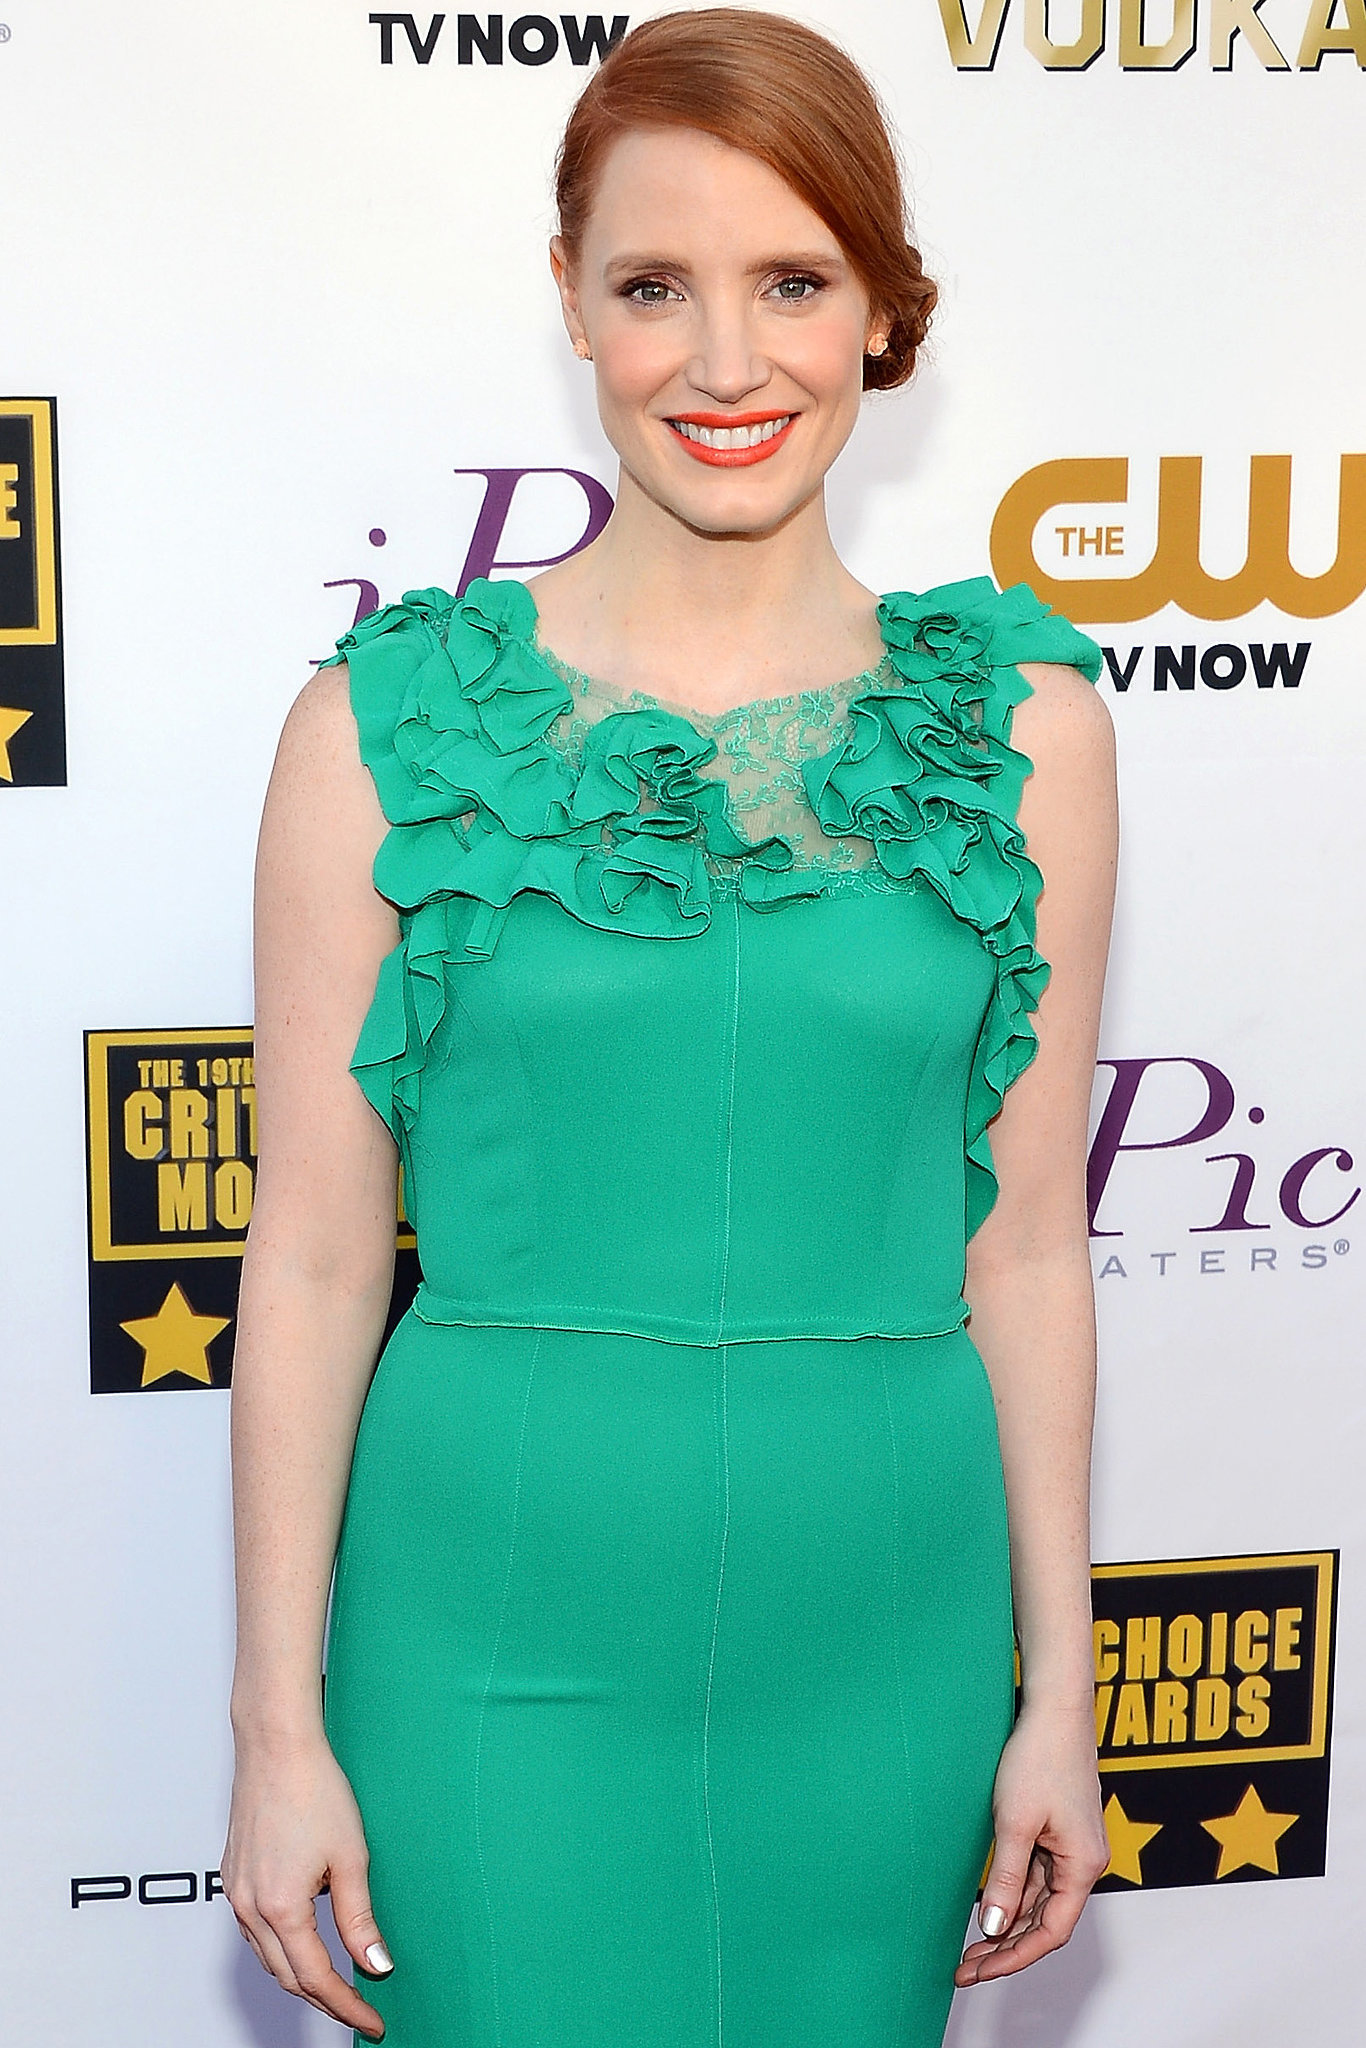 Jessica Chastain may join Mission Impossible 5, alongside Tom Cruise.